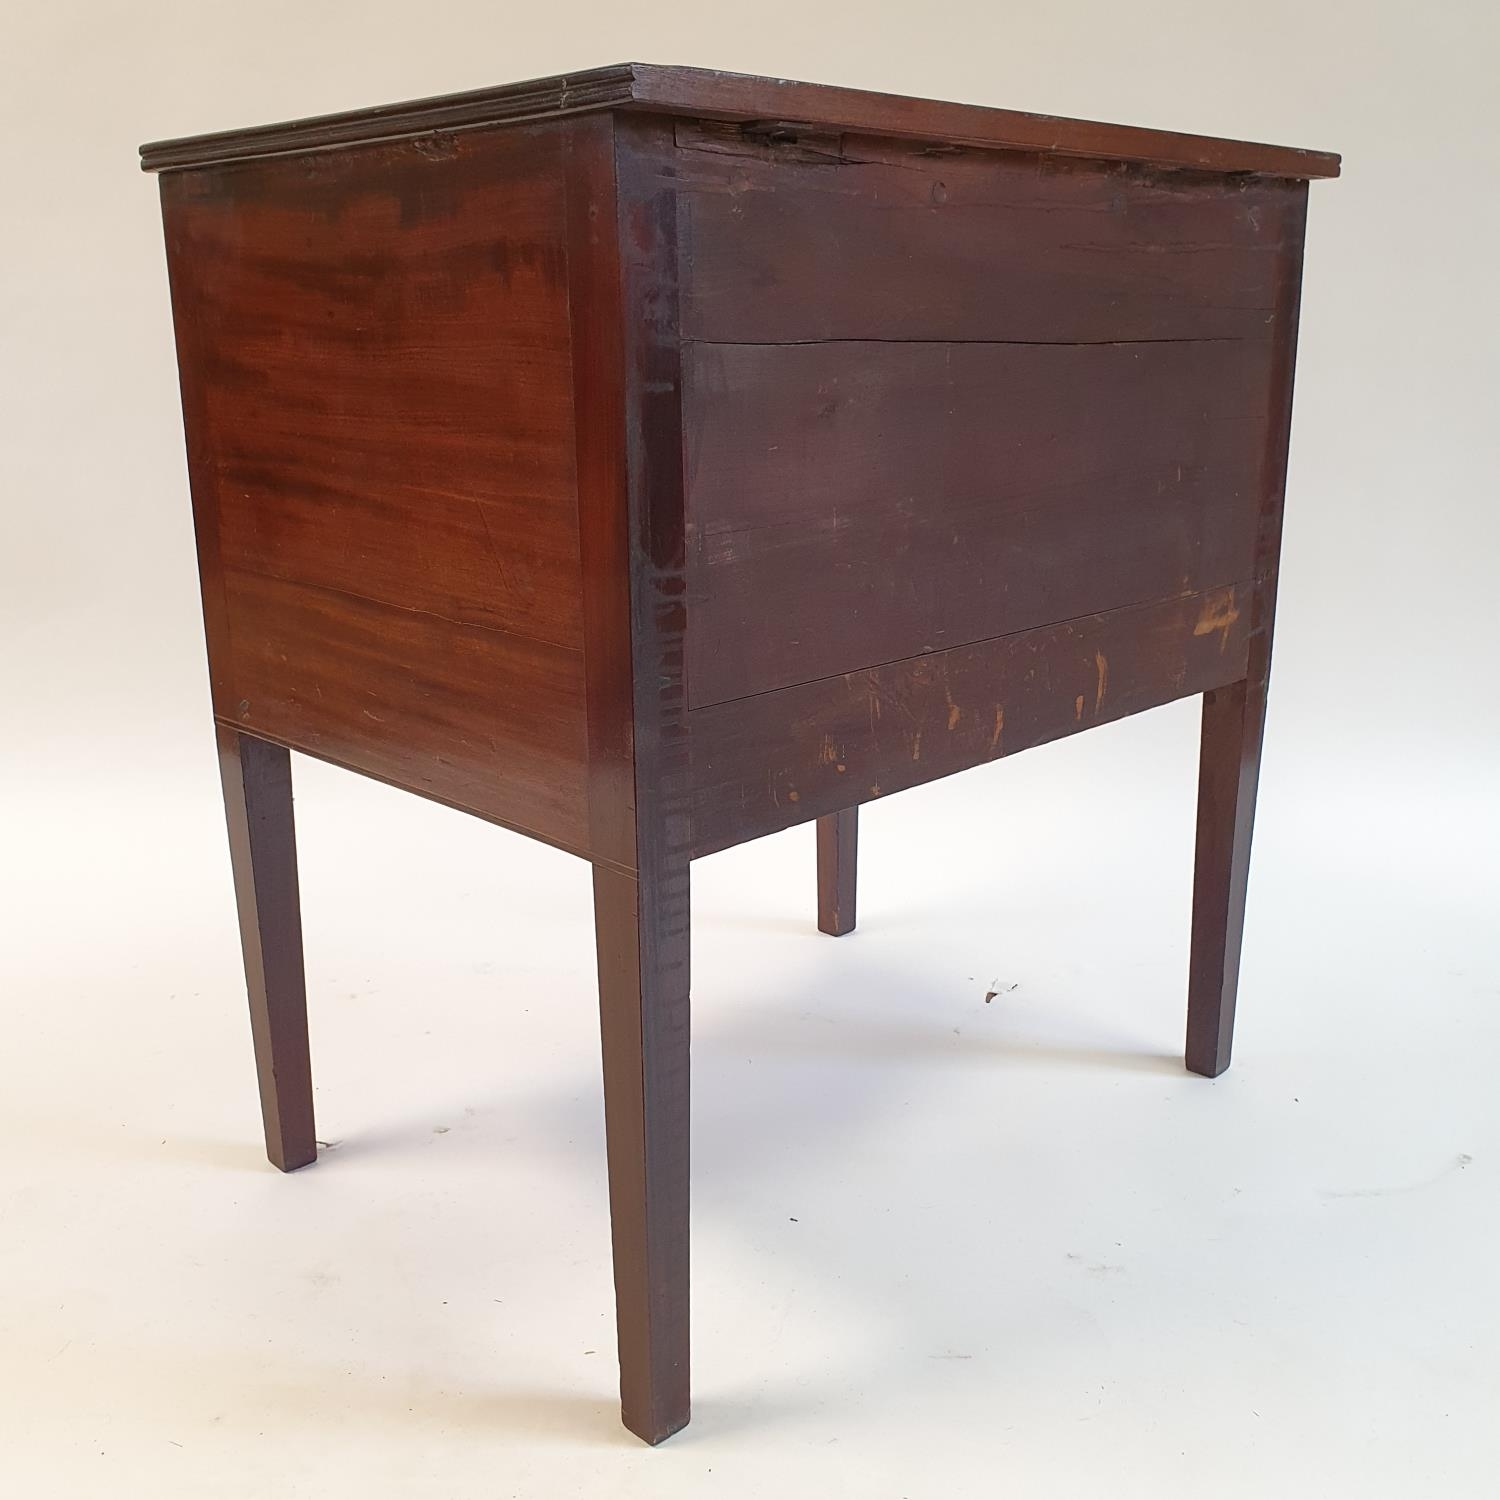 A mahogany chest of three drawers, on square tapering legs, 68 cm wide - Image 3 of 3